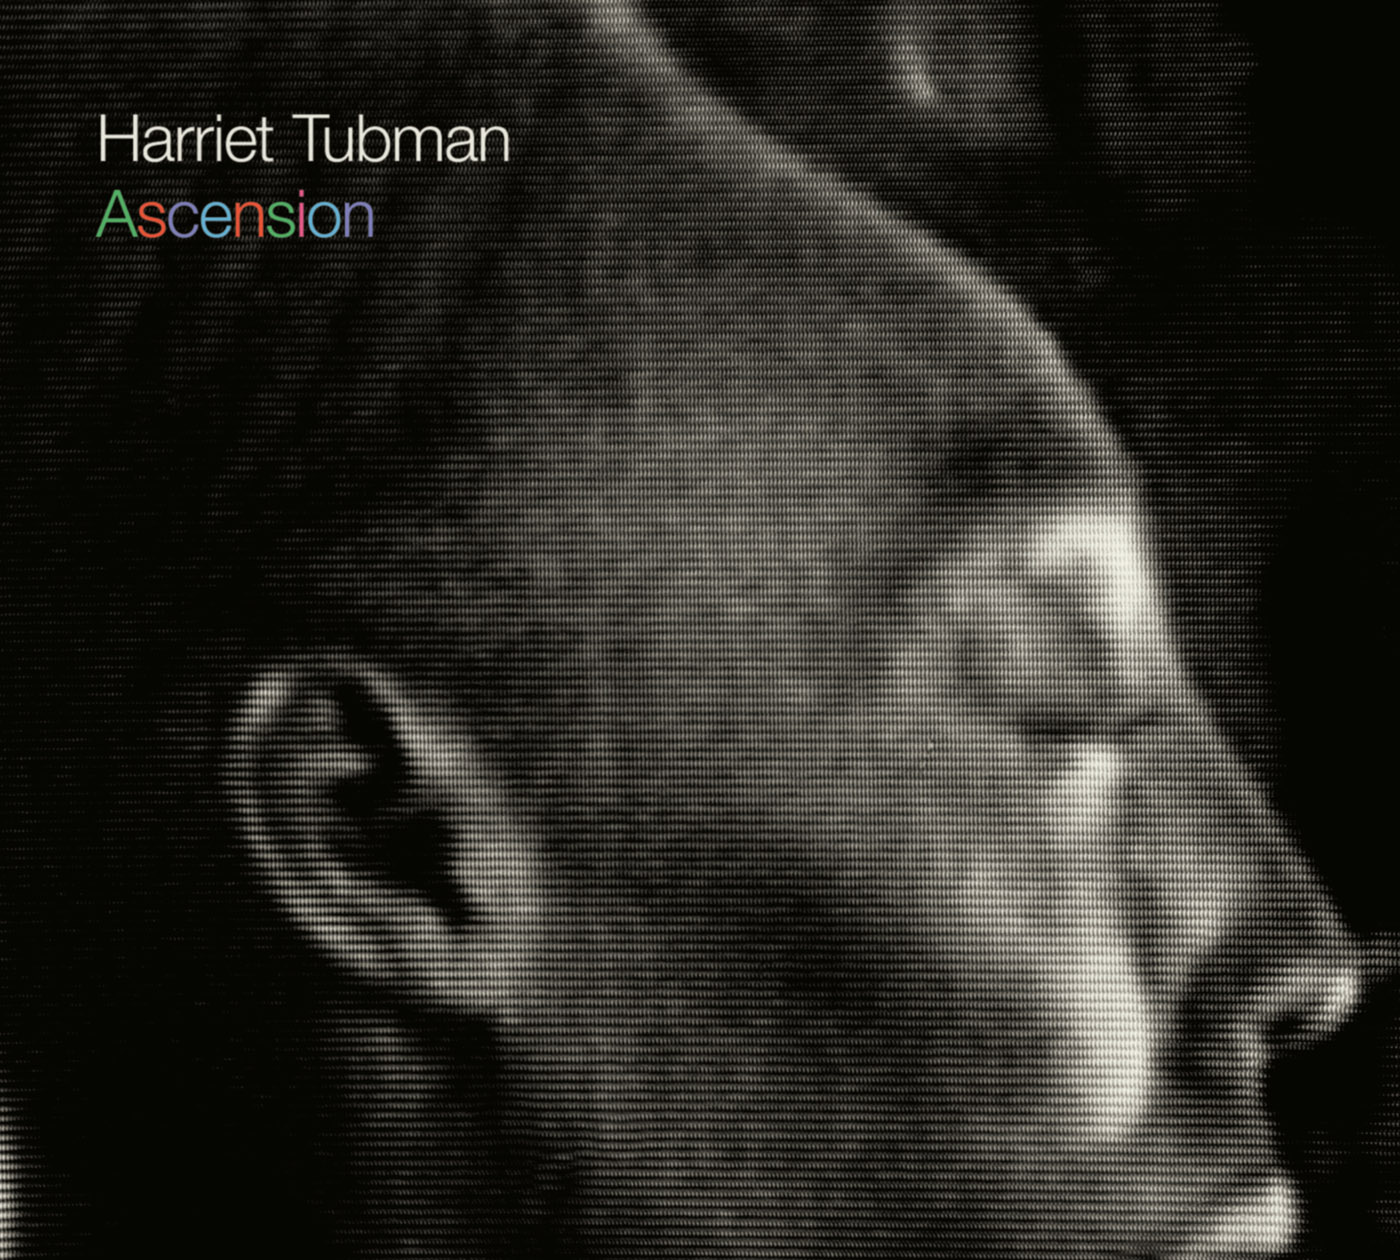 Ascension by Harriet Tubman cover